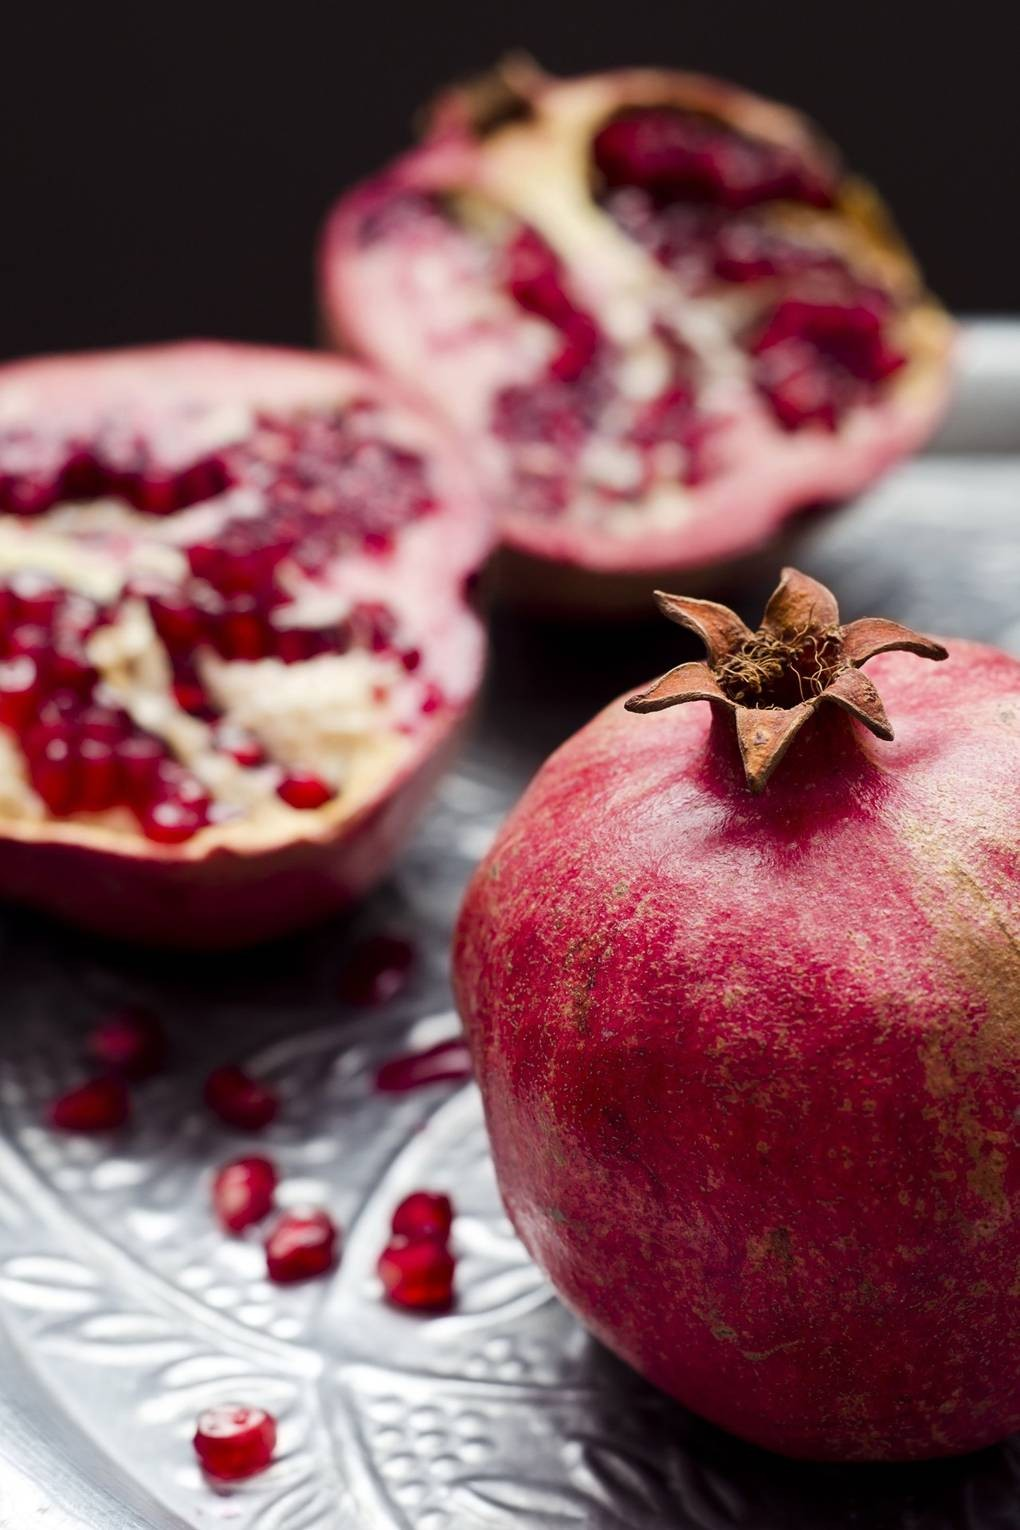 pomegranates-vogue-11nov14-rex-b.jpg